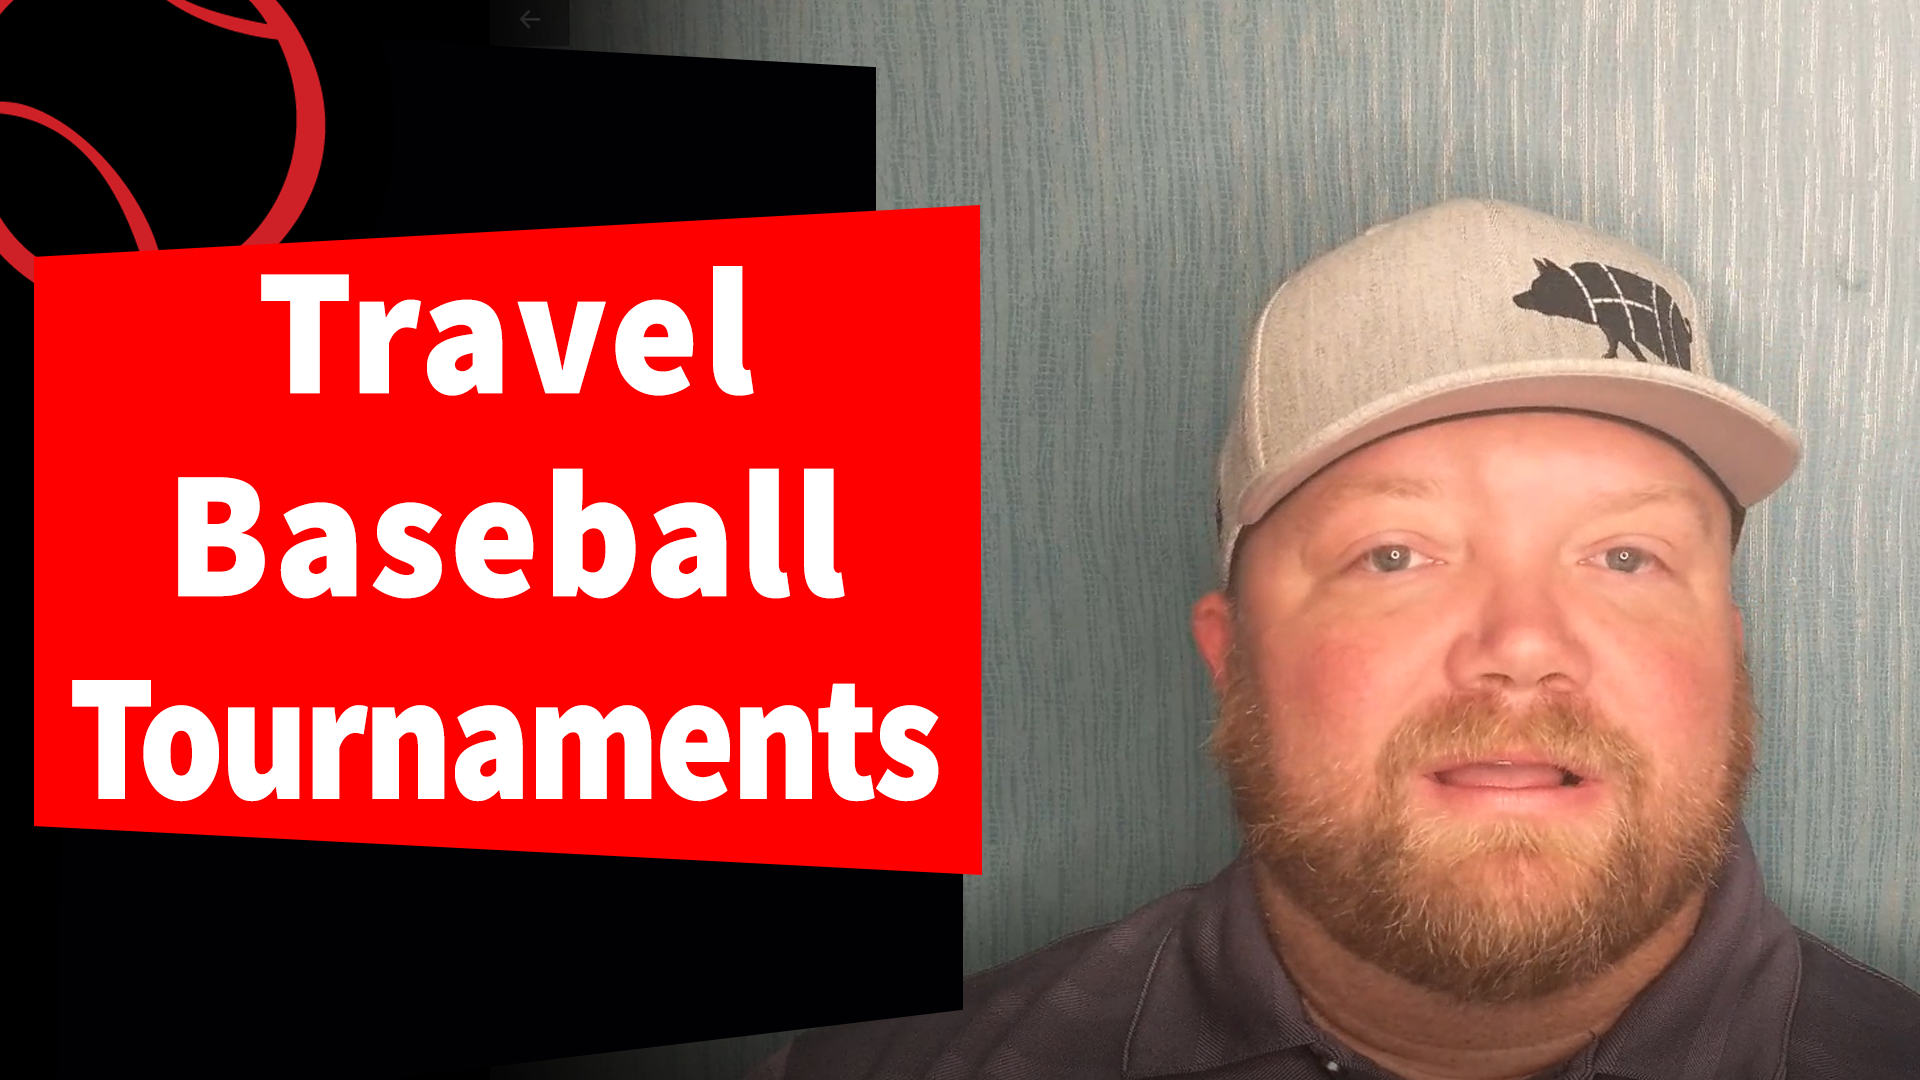 Why We Like Travel Baseball Tournaments